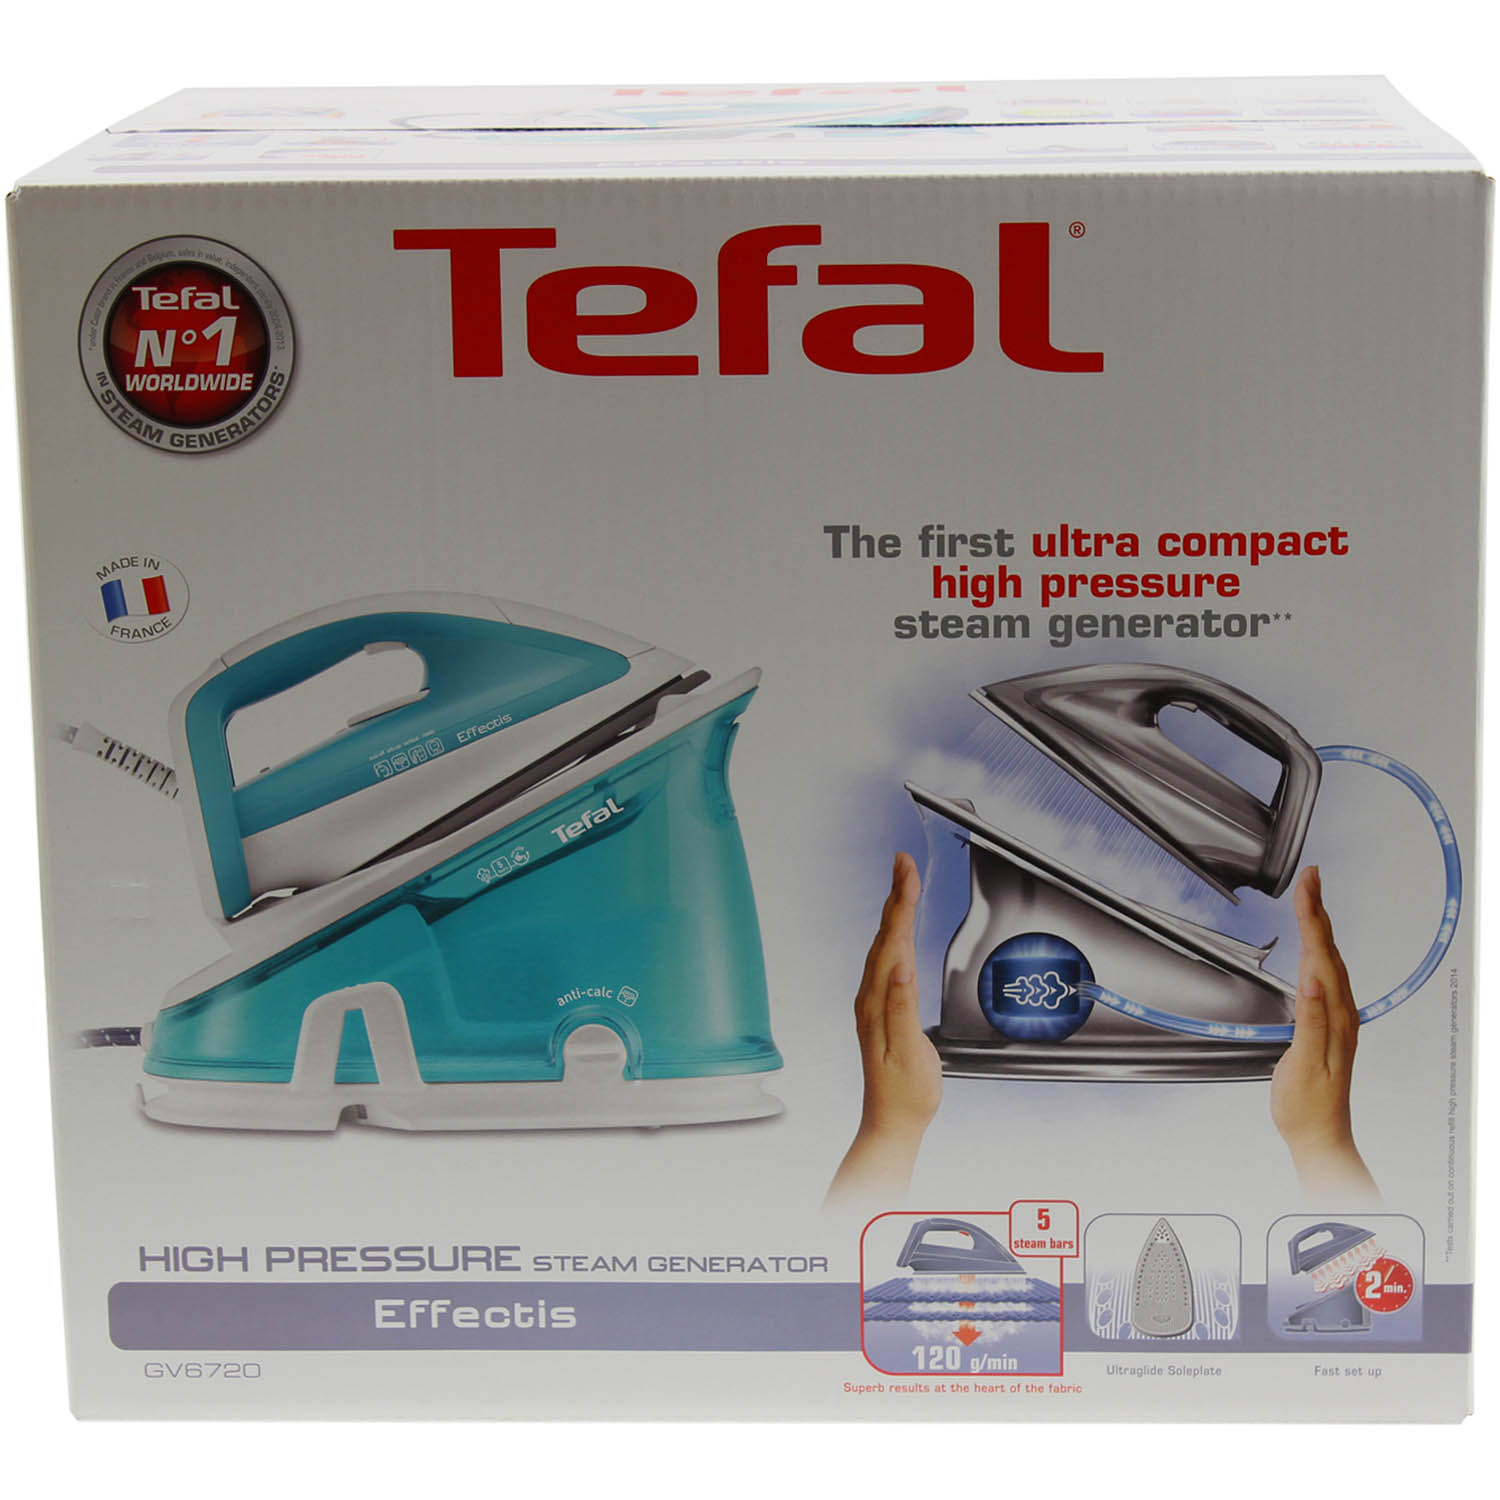 how to clean tefal steam generator iron